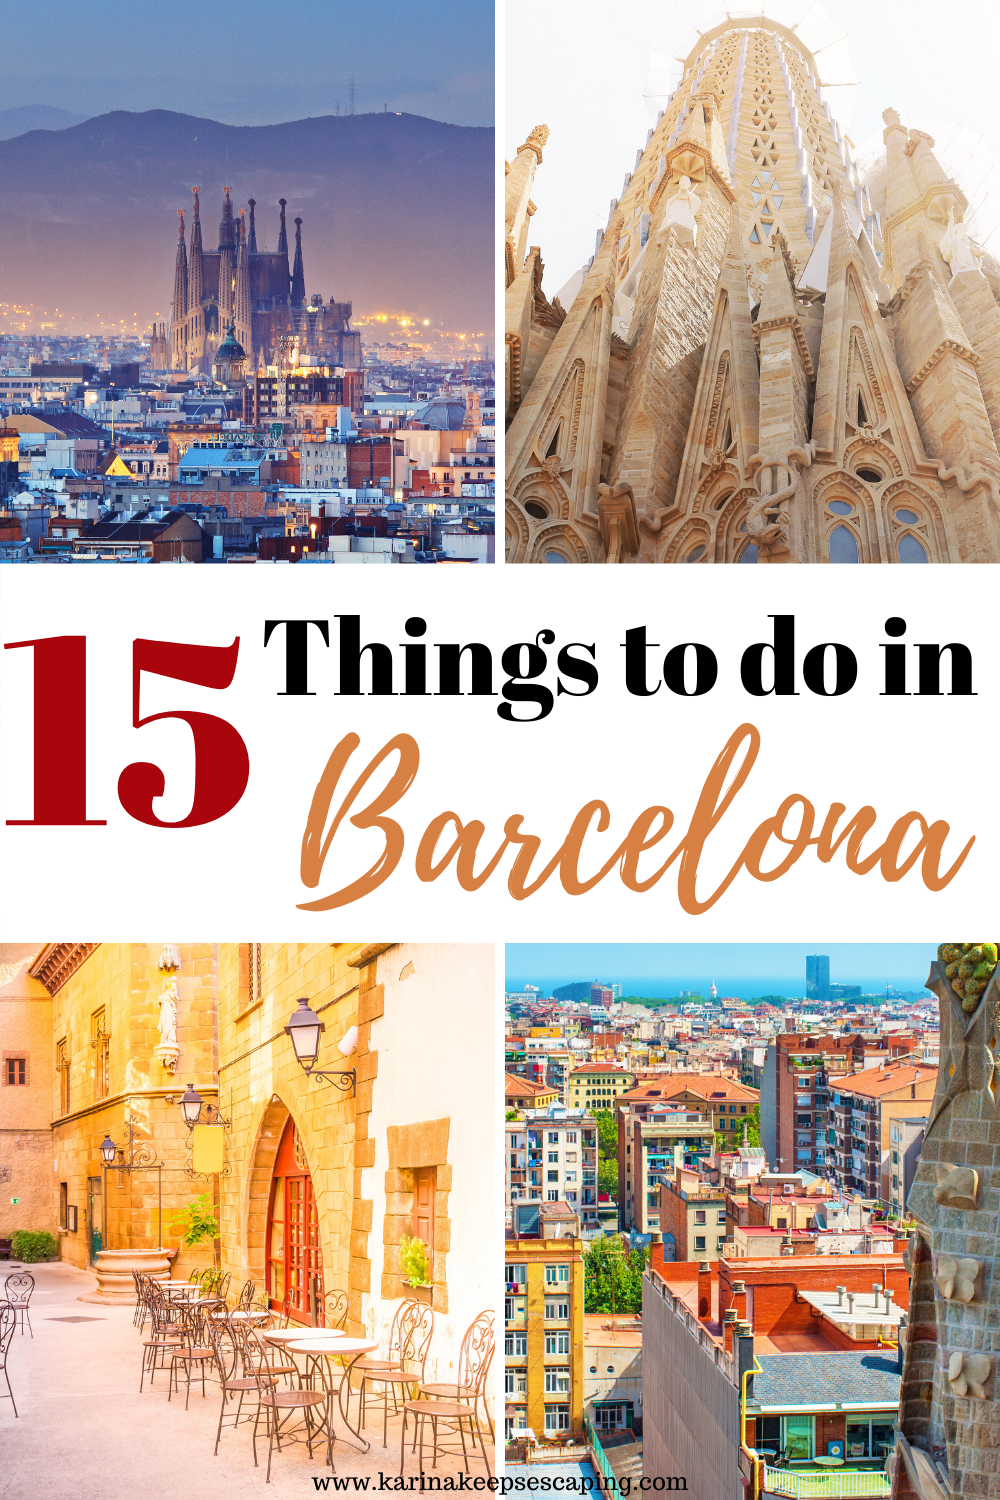 Are you ready to explore the Best Things to do in Barcelona with me? There is something for everyone. For students seeking their University exchange programs, for couples looking for a romantic getaway, to families with kids and those who just want to enjoy some architecture and history. | Barcelona | Spain | Visit Spain | Best Things to do in Barcelona | What to do in Barcelona | Where to stay in Barcelona